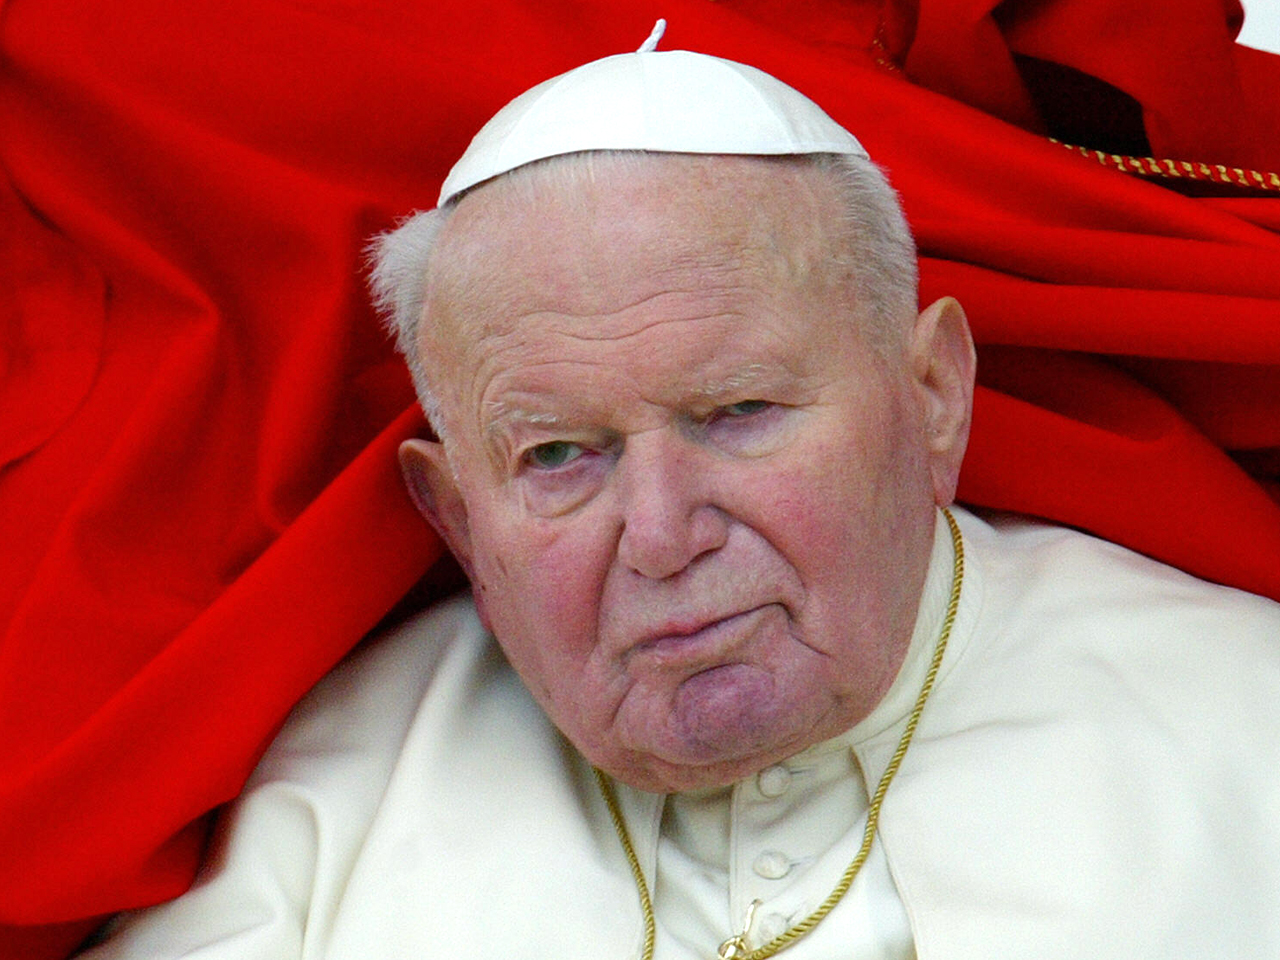 Paul Scholes House Pictures - m Pictures of pope paul